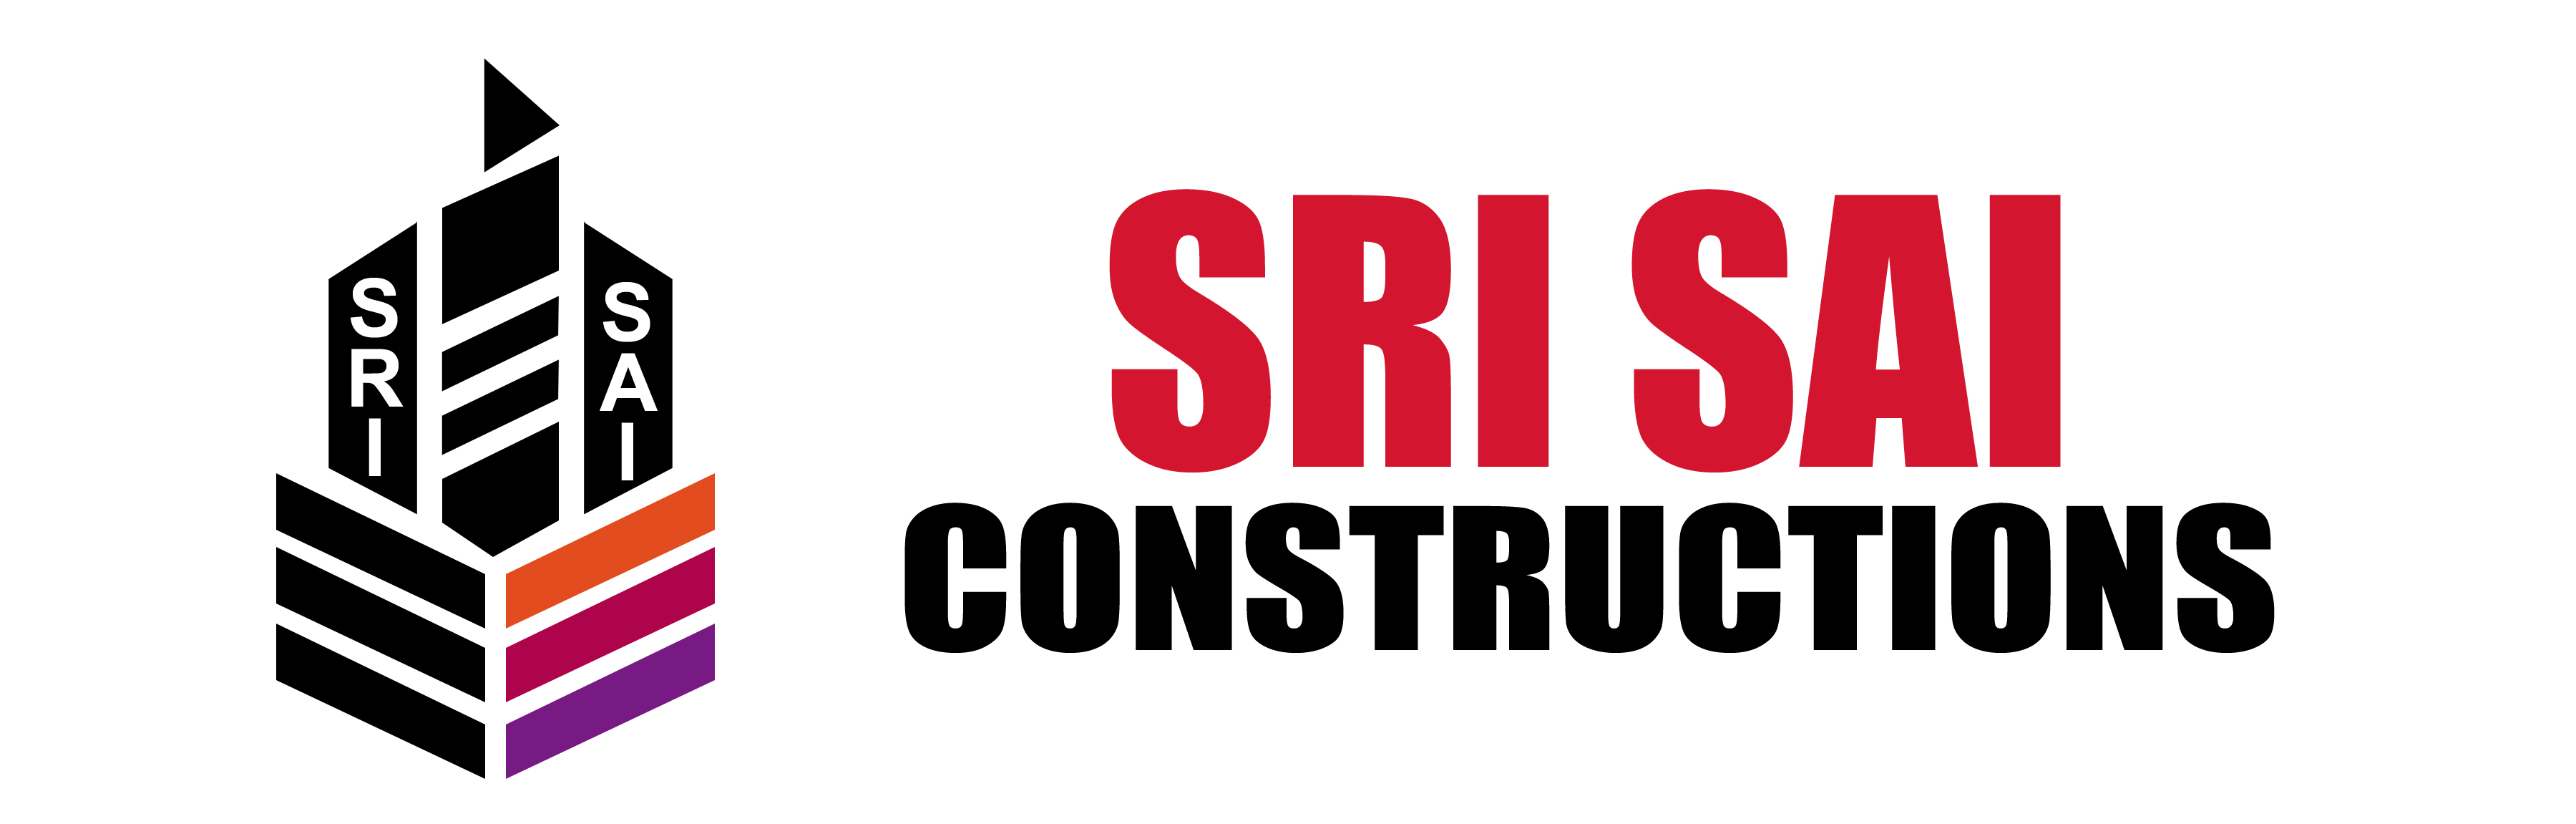 Sri Sai Construction